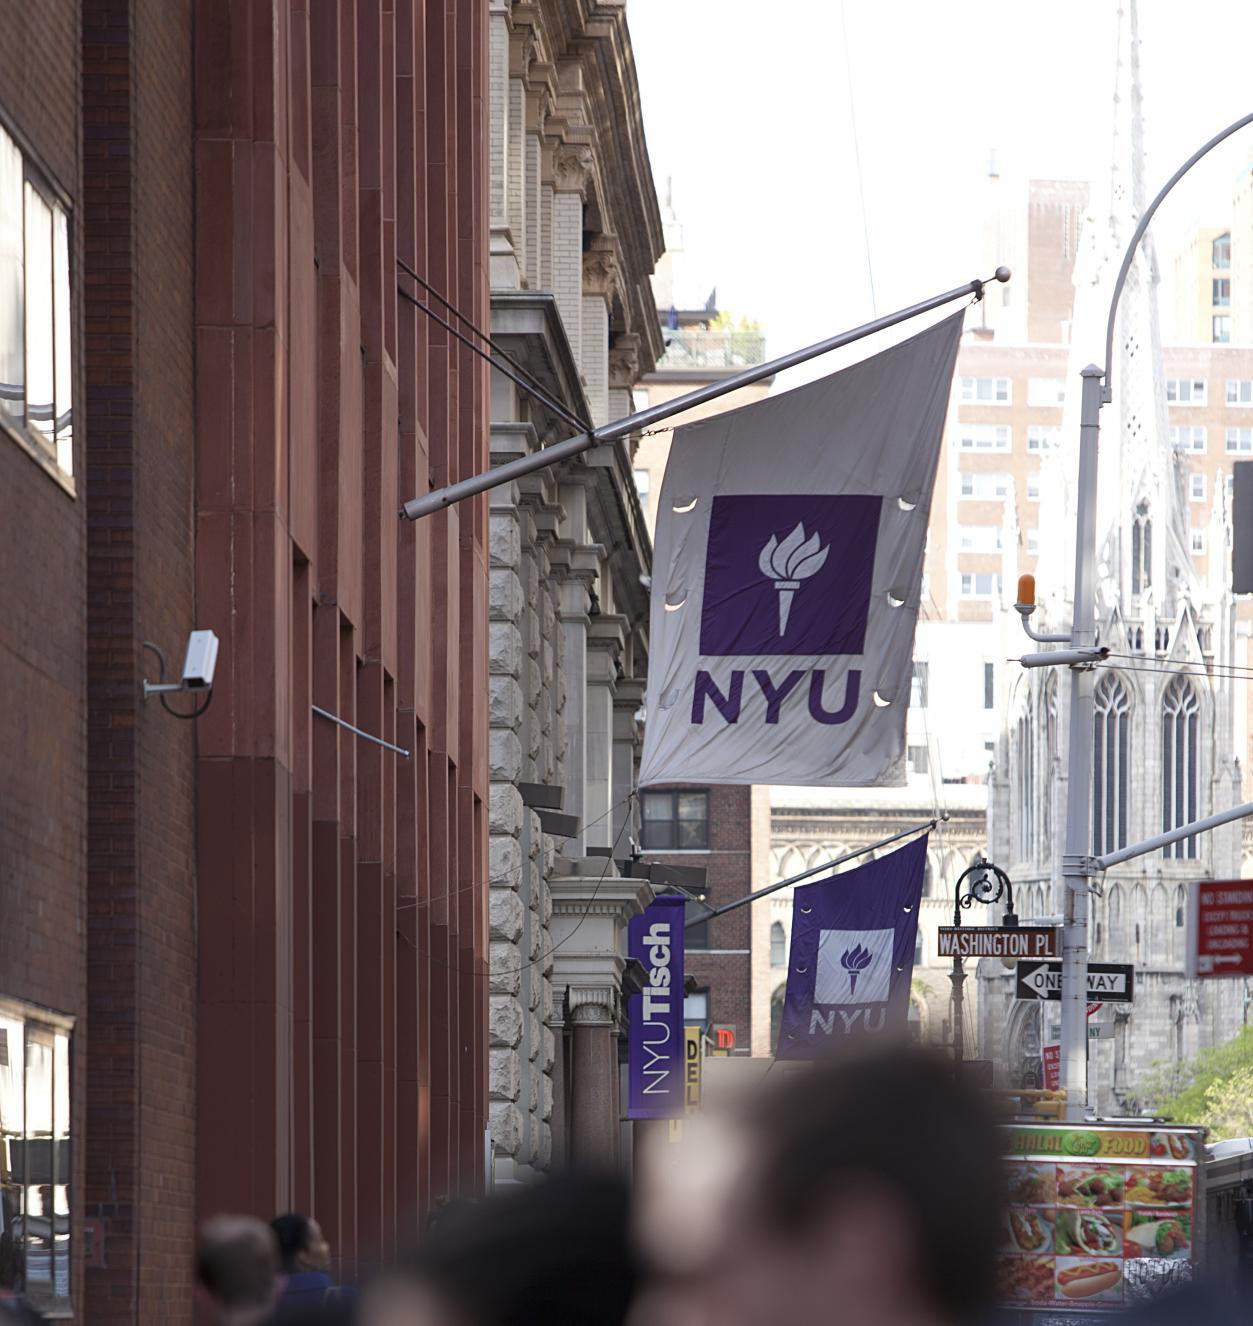 View of sidewalk with blurry crowds below an NYU Banner